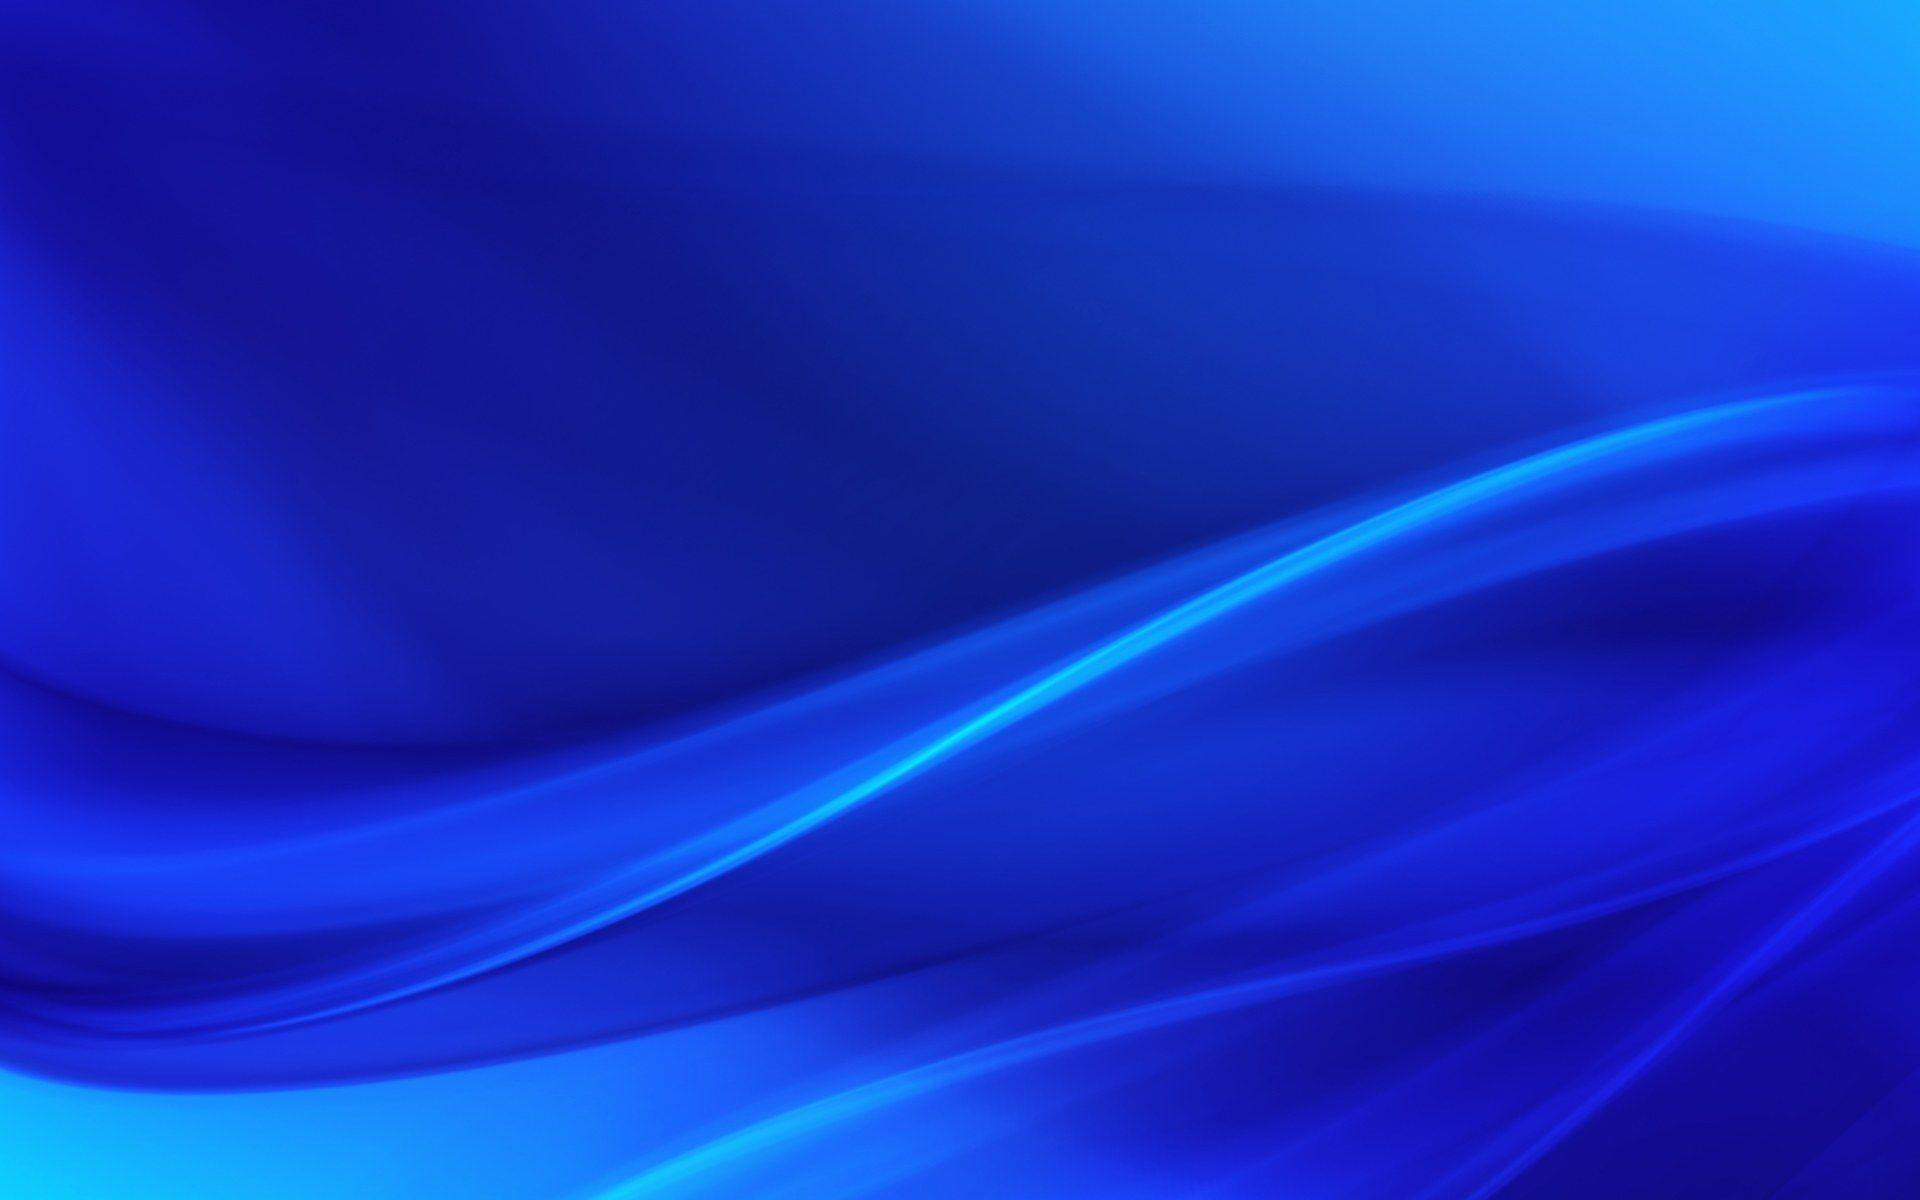 Blue Backgrounds Wallpapers